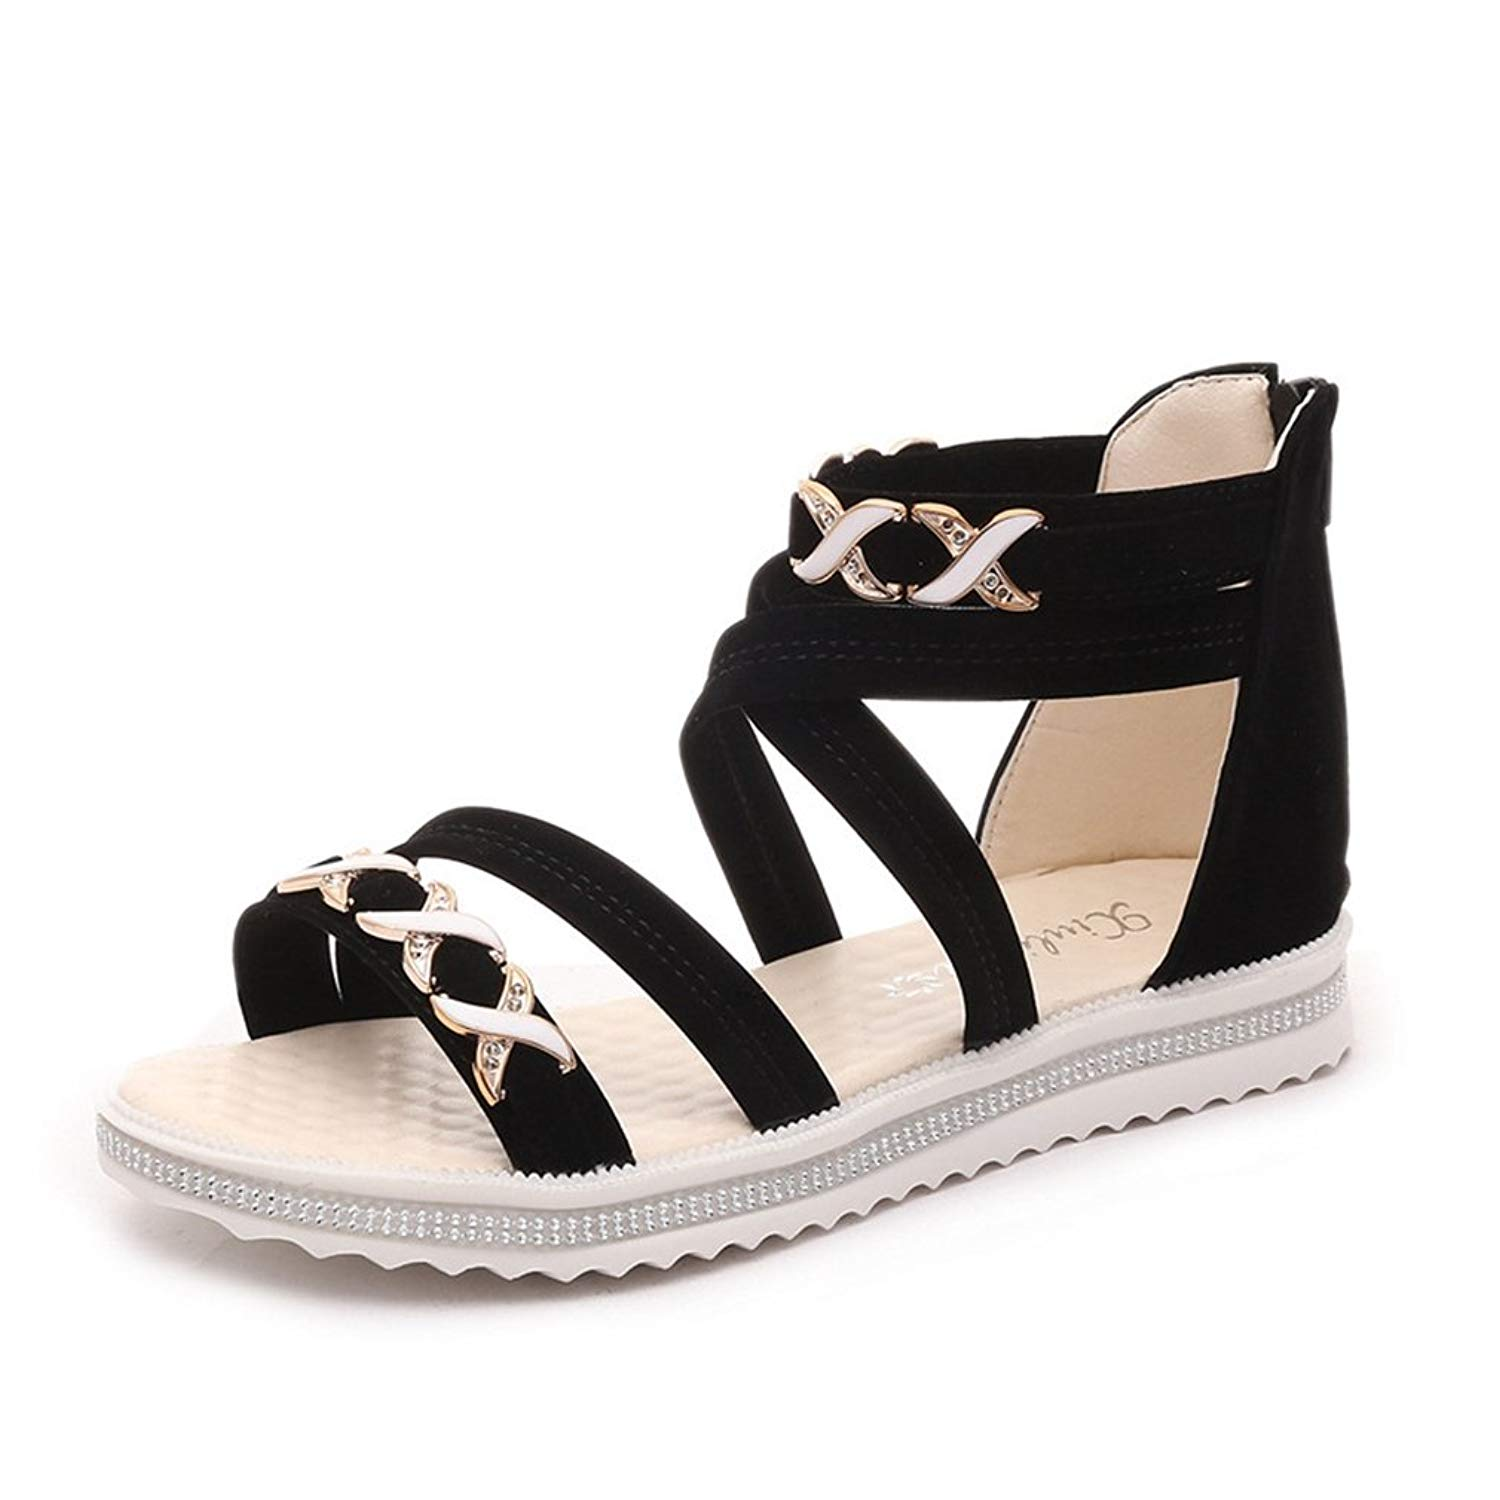 21ff4c056856b Get Quotations · Womens Flat Rhinestone Sandals Back Zip Casual Open Toe  Elastic Ankle Strap Gladiator Roman Shoes